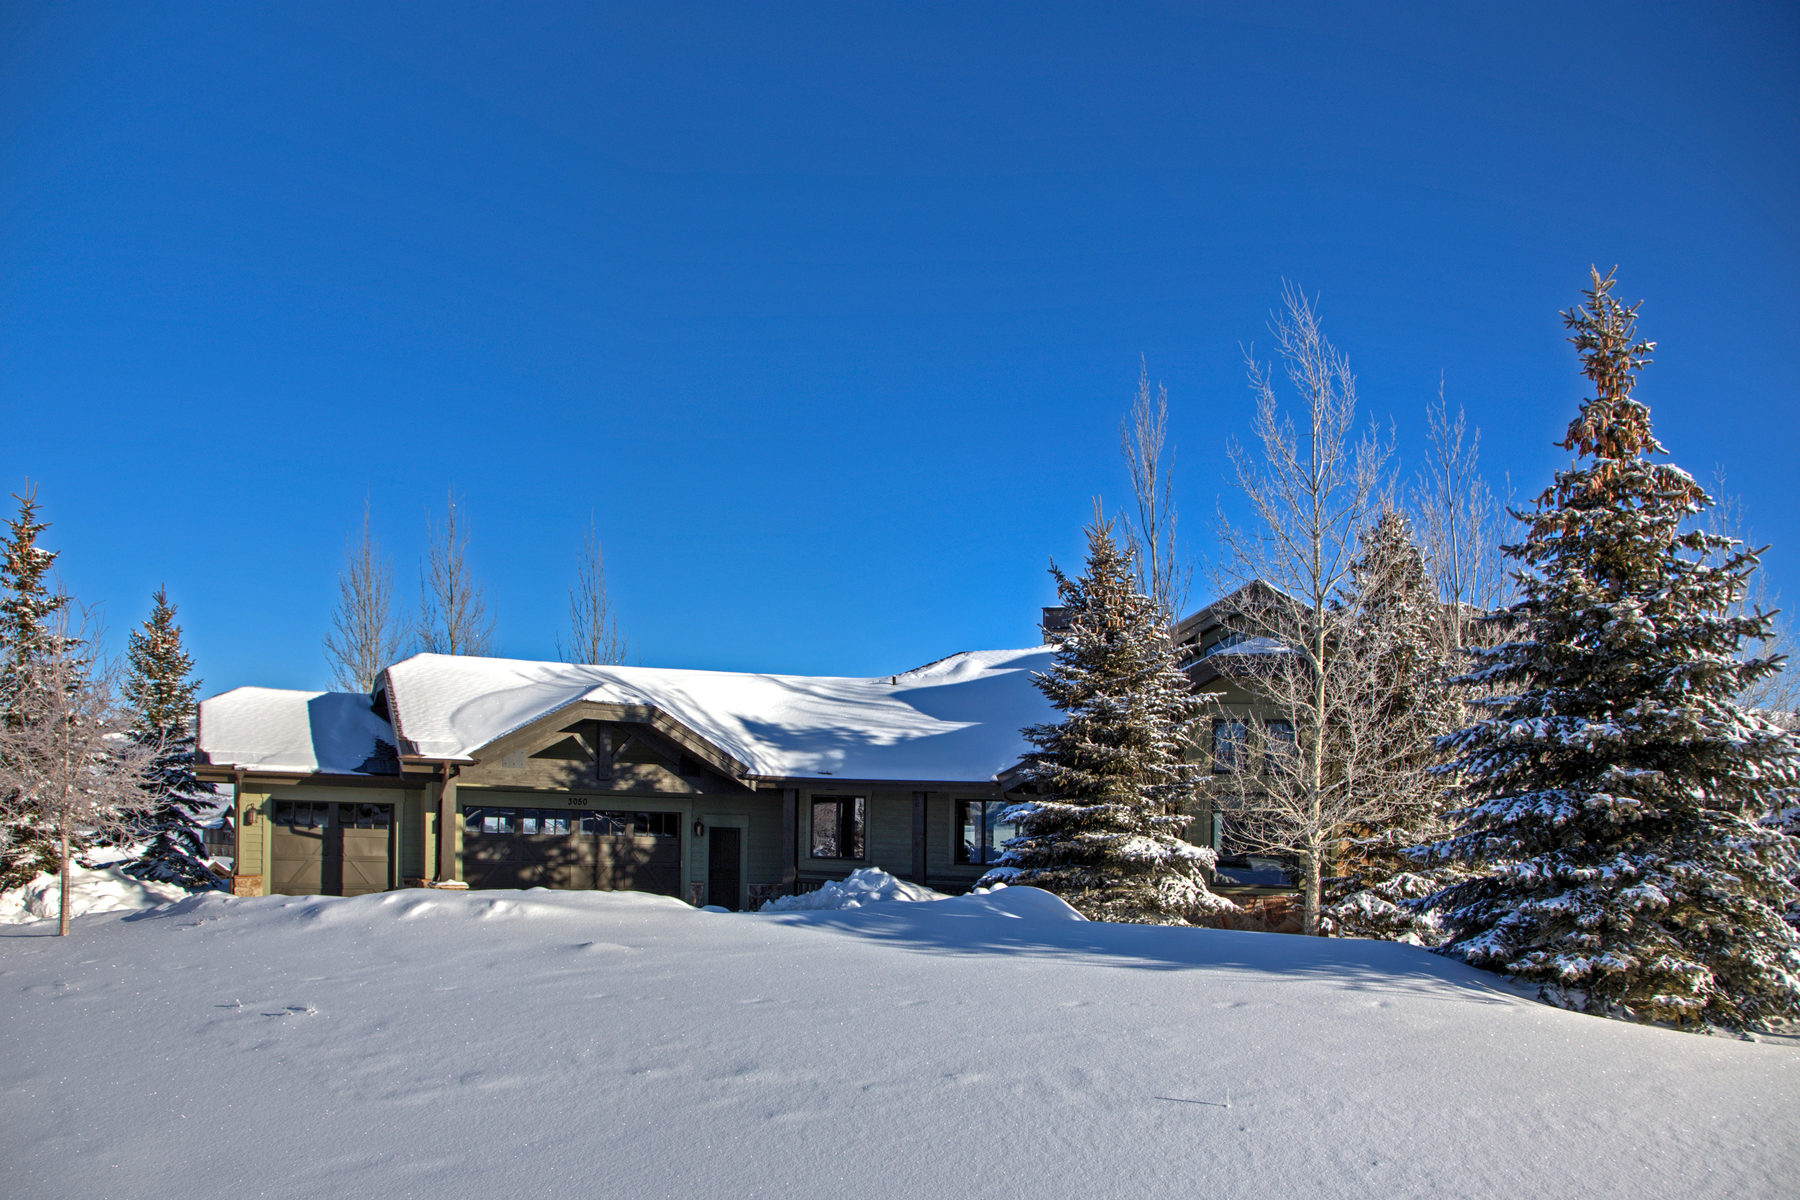 一戸建て のために 売買 アット Mountain Comfort in Wapiti Canyon, Promontory 3050 E Wapiti Canyon Rd Park City, ユタ, 84098 アメリカ合衆国